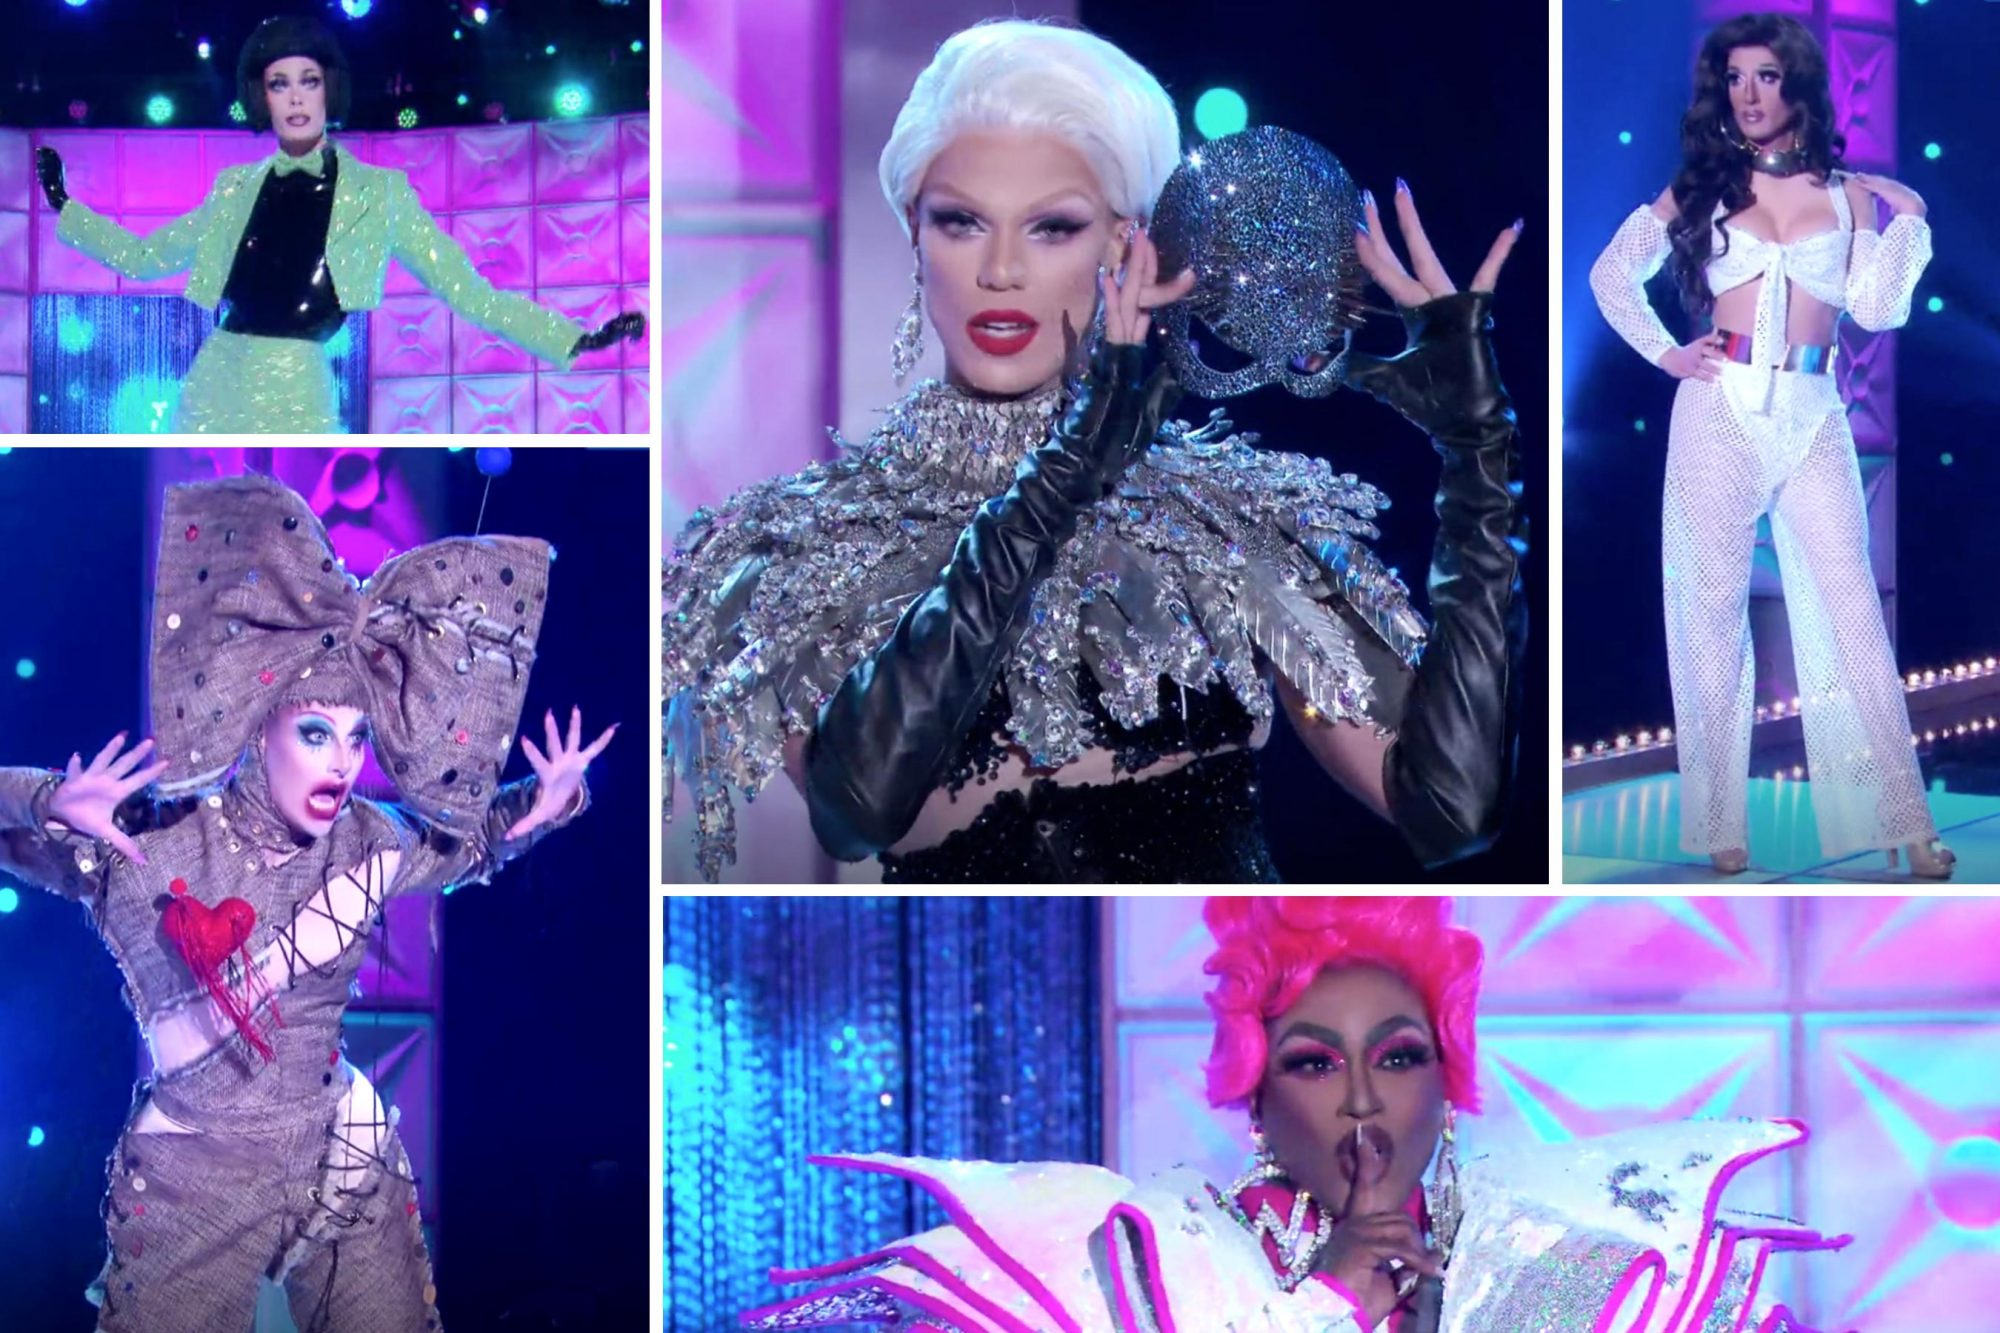 Rupaul S Drag Race Season 12 Runway Looks Ranked Ew Com